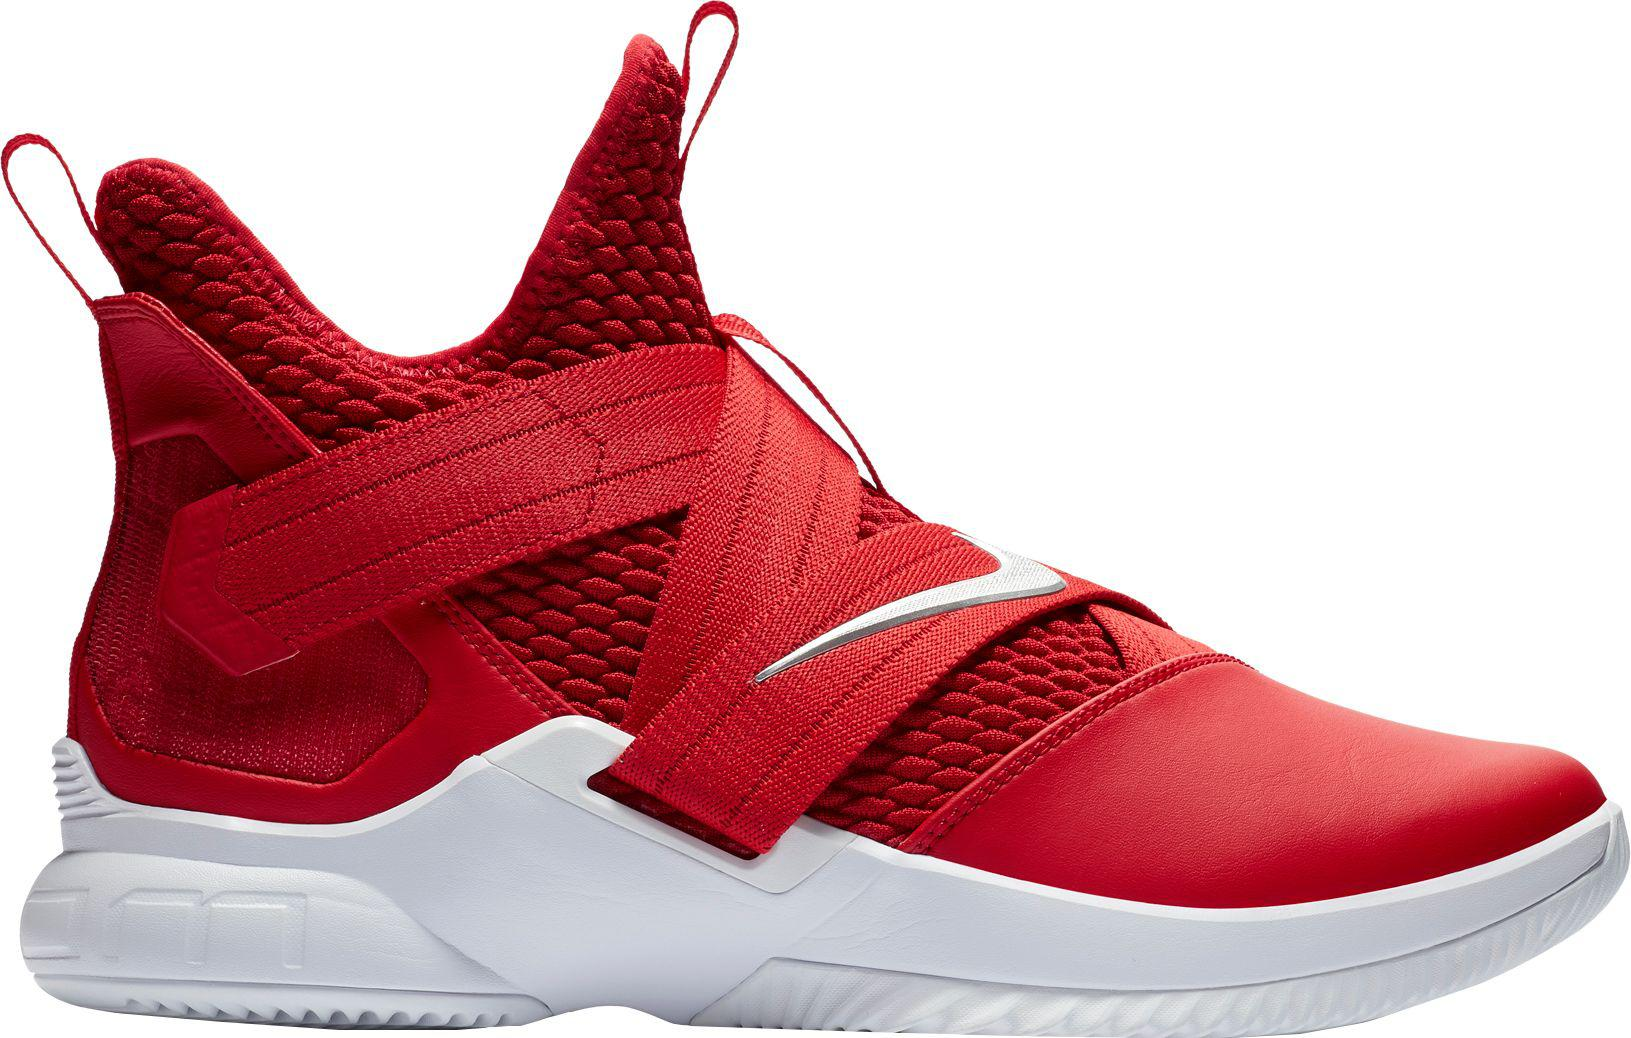 db8be44f0ef2 Lyst - Nike Zoom Lebron Soldier Xii Tb Basketball Shoes in Red for Men